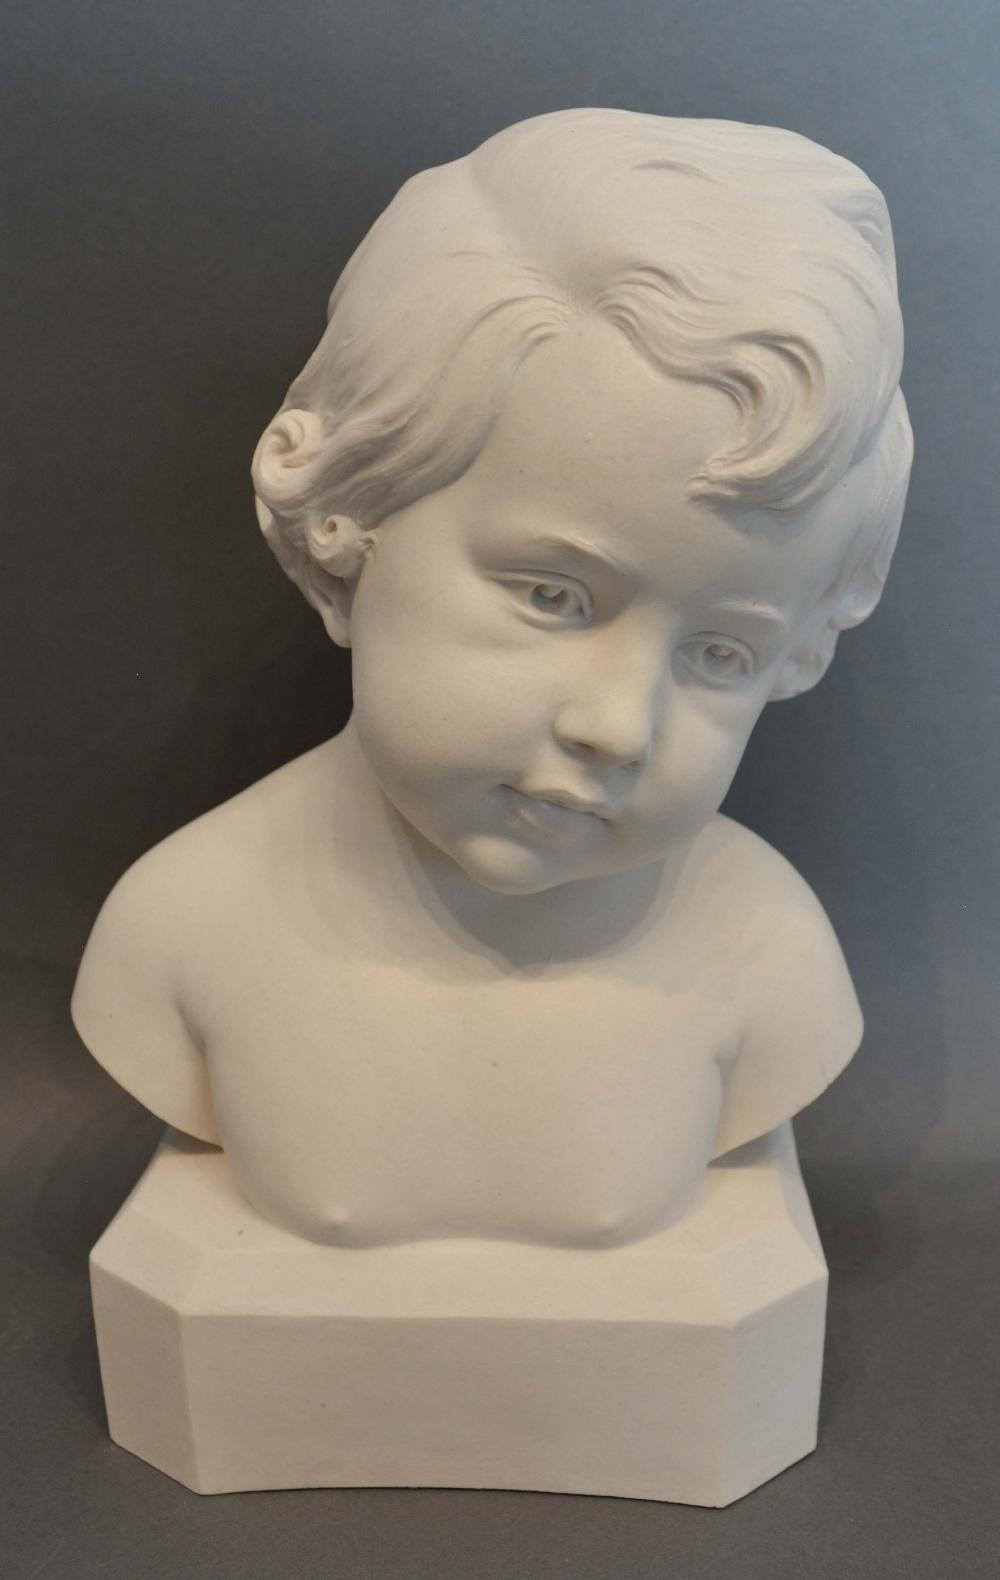 Lot 272 - A Reconstituted Marble Bust in the form of a boy, bearing signature Daniel, 25cm tall